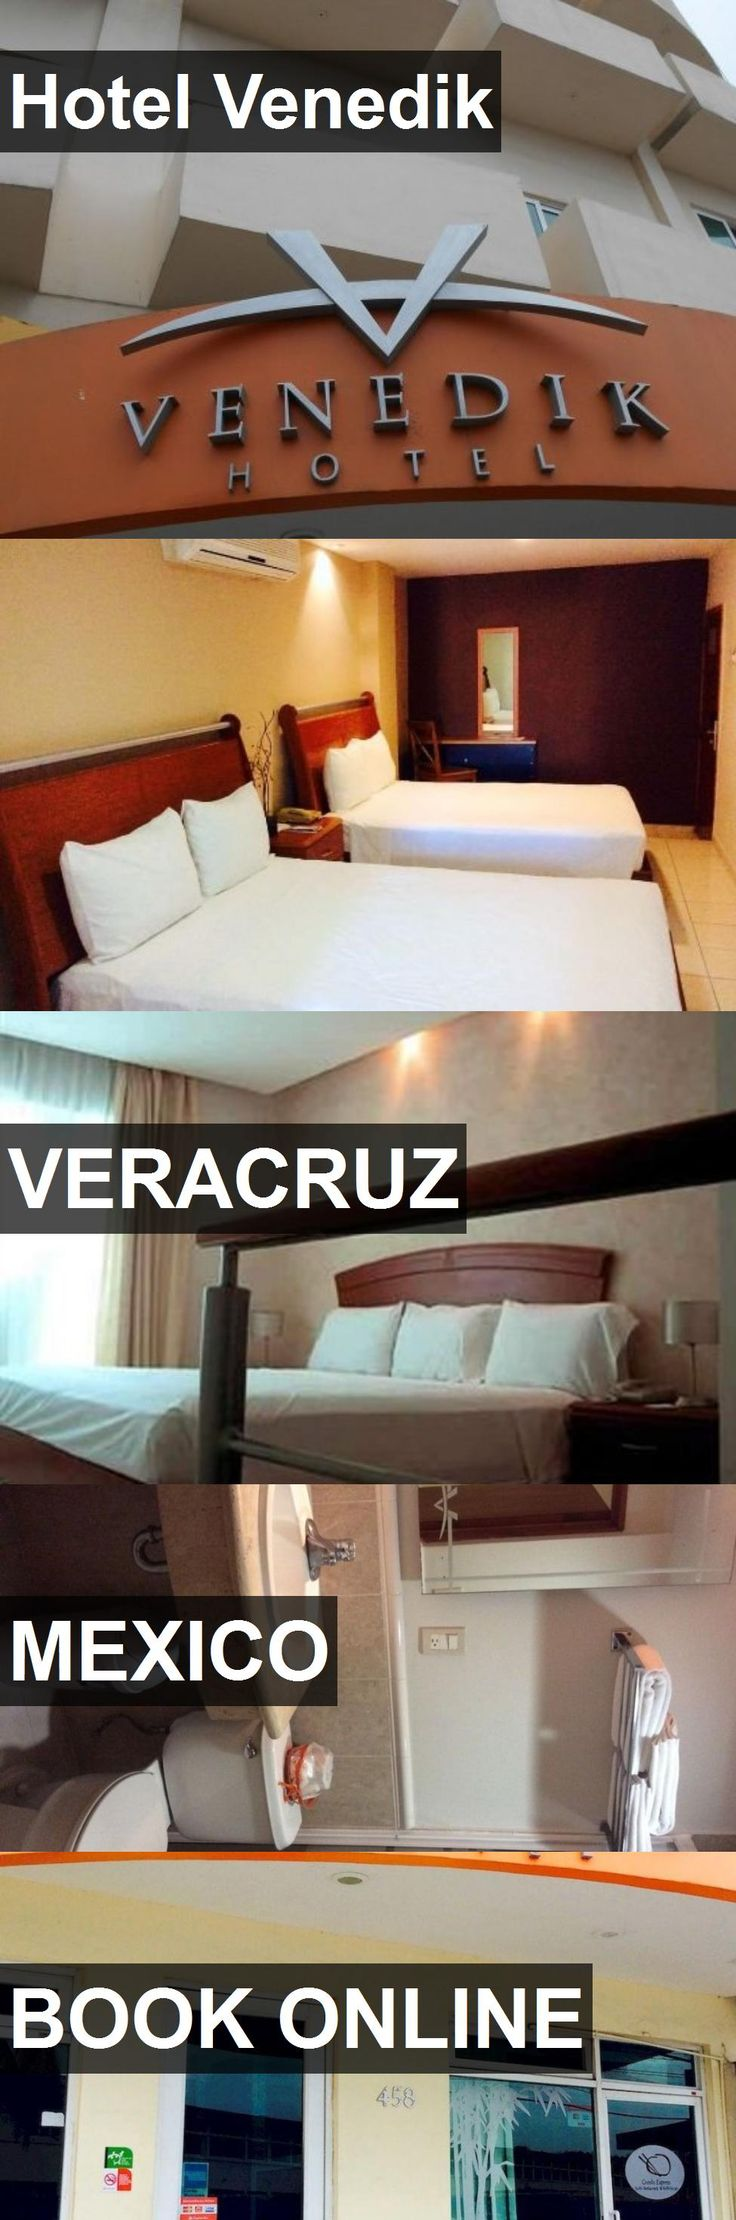 Hotel Hotel Venedik in Veracruz, Mexico. For more information, photos, reviews and best prices please follow the link. #Mexico #Veracruz #HotelVenedik #hotel #travel #vacation